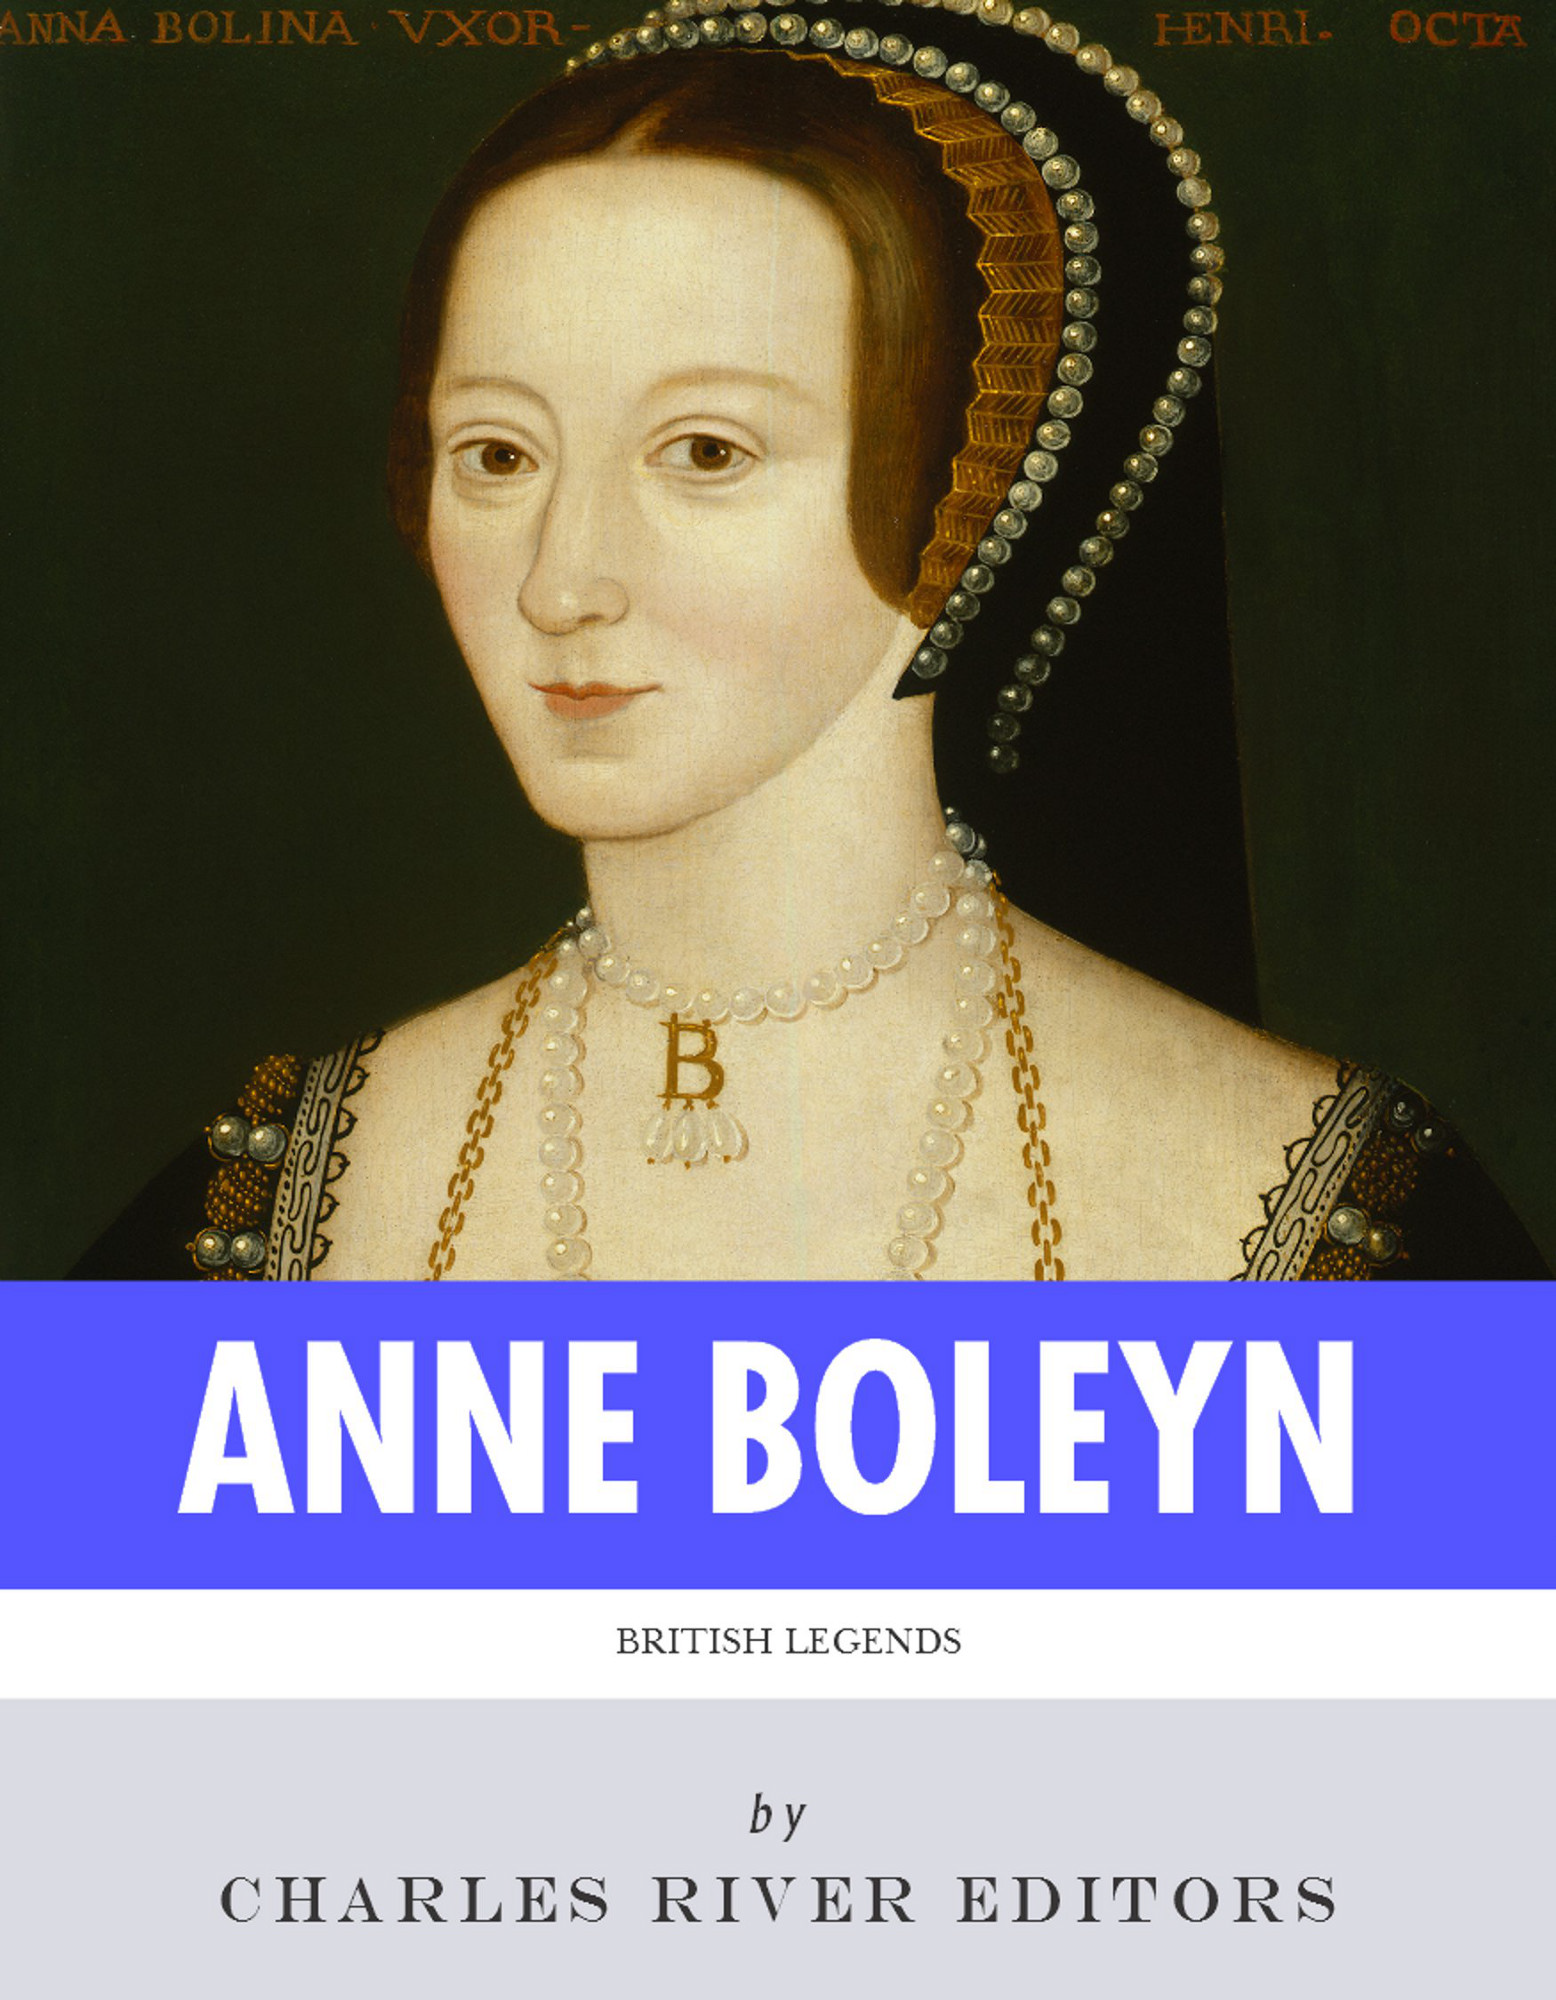 British Legends: The Life and Legacy of Anne Boleyn By: Charles River Editors